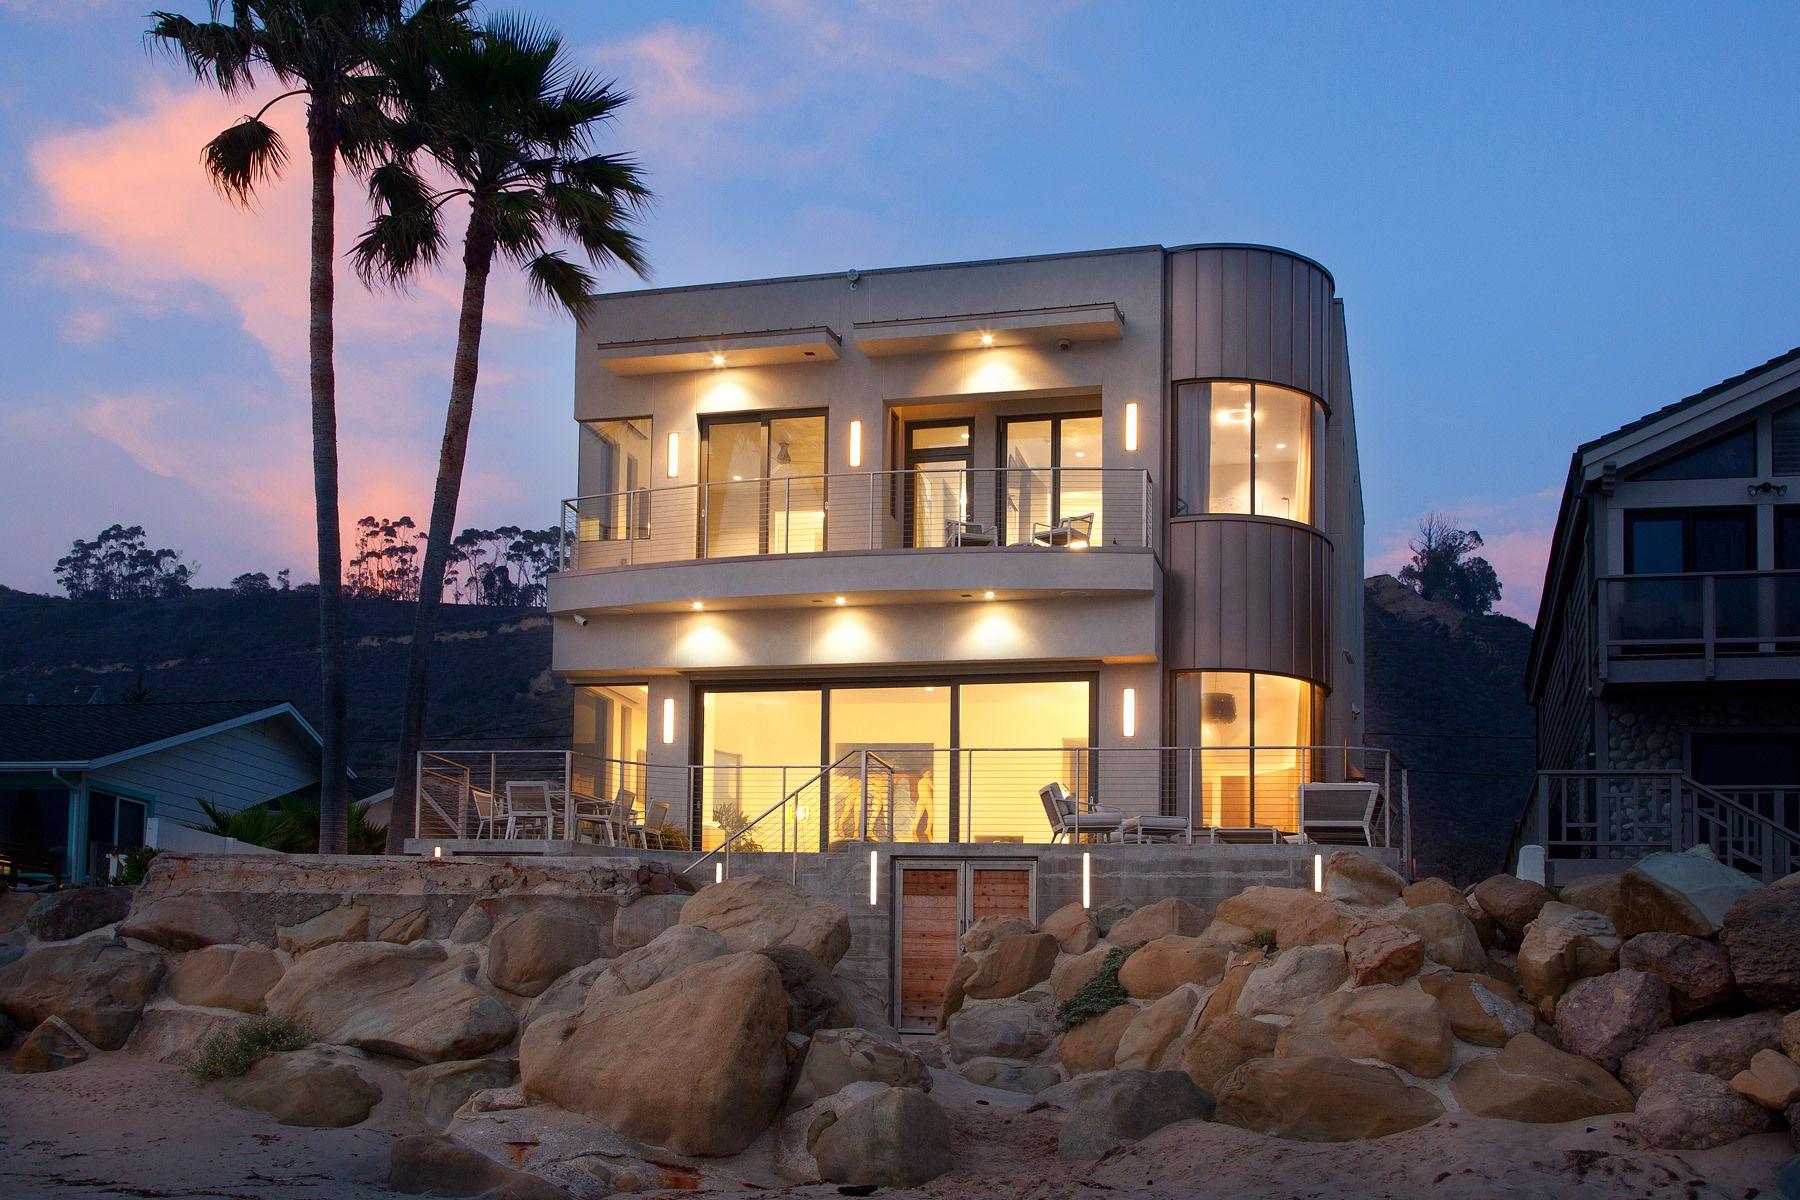 1bryon_cranston_cambria_beachhouse_night.jpg